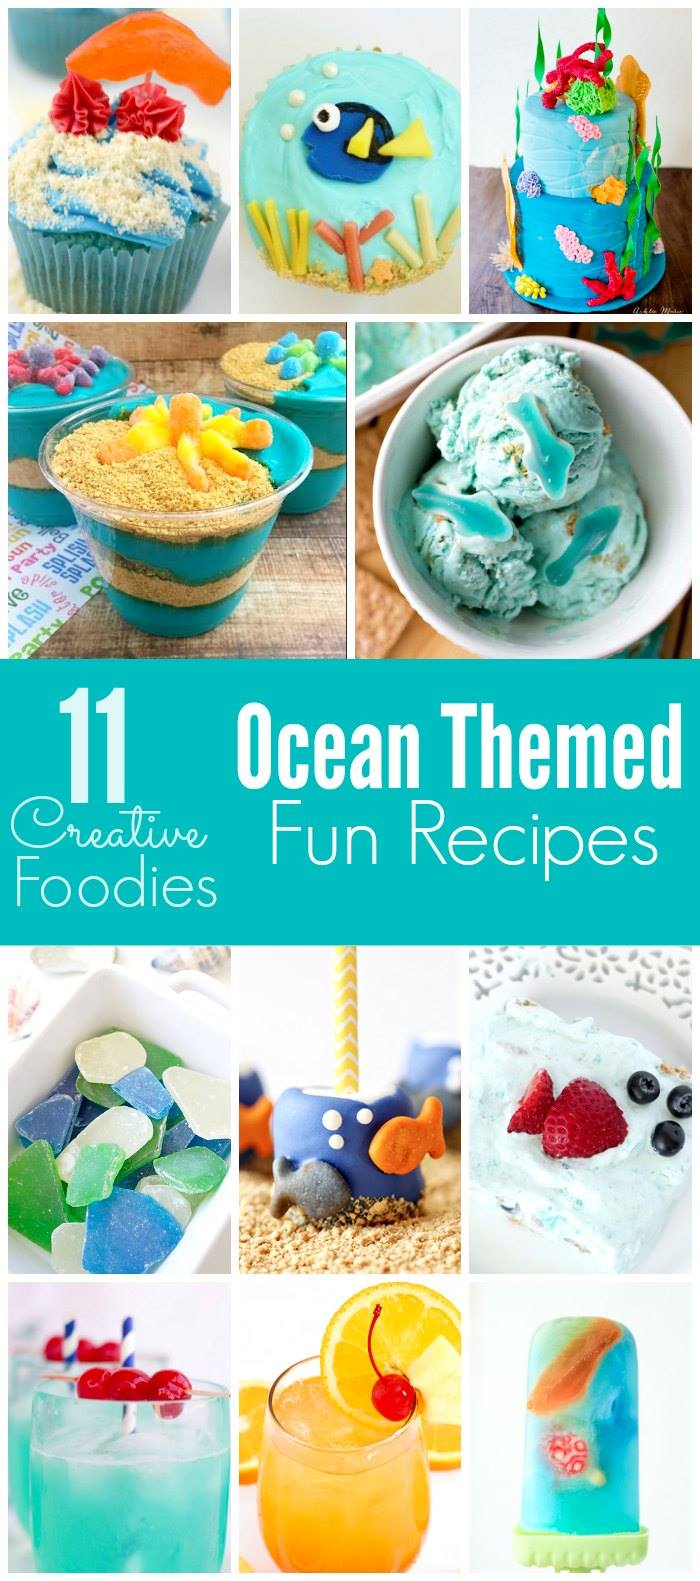 A fun collection of fun Ocean Themed Recipes!